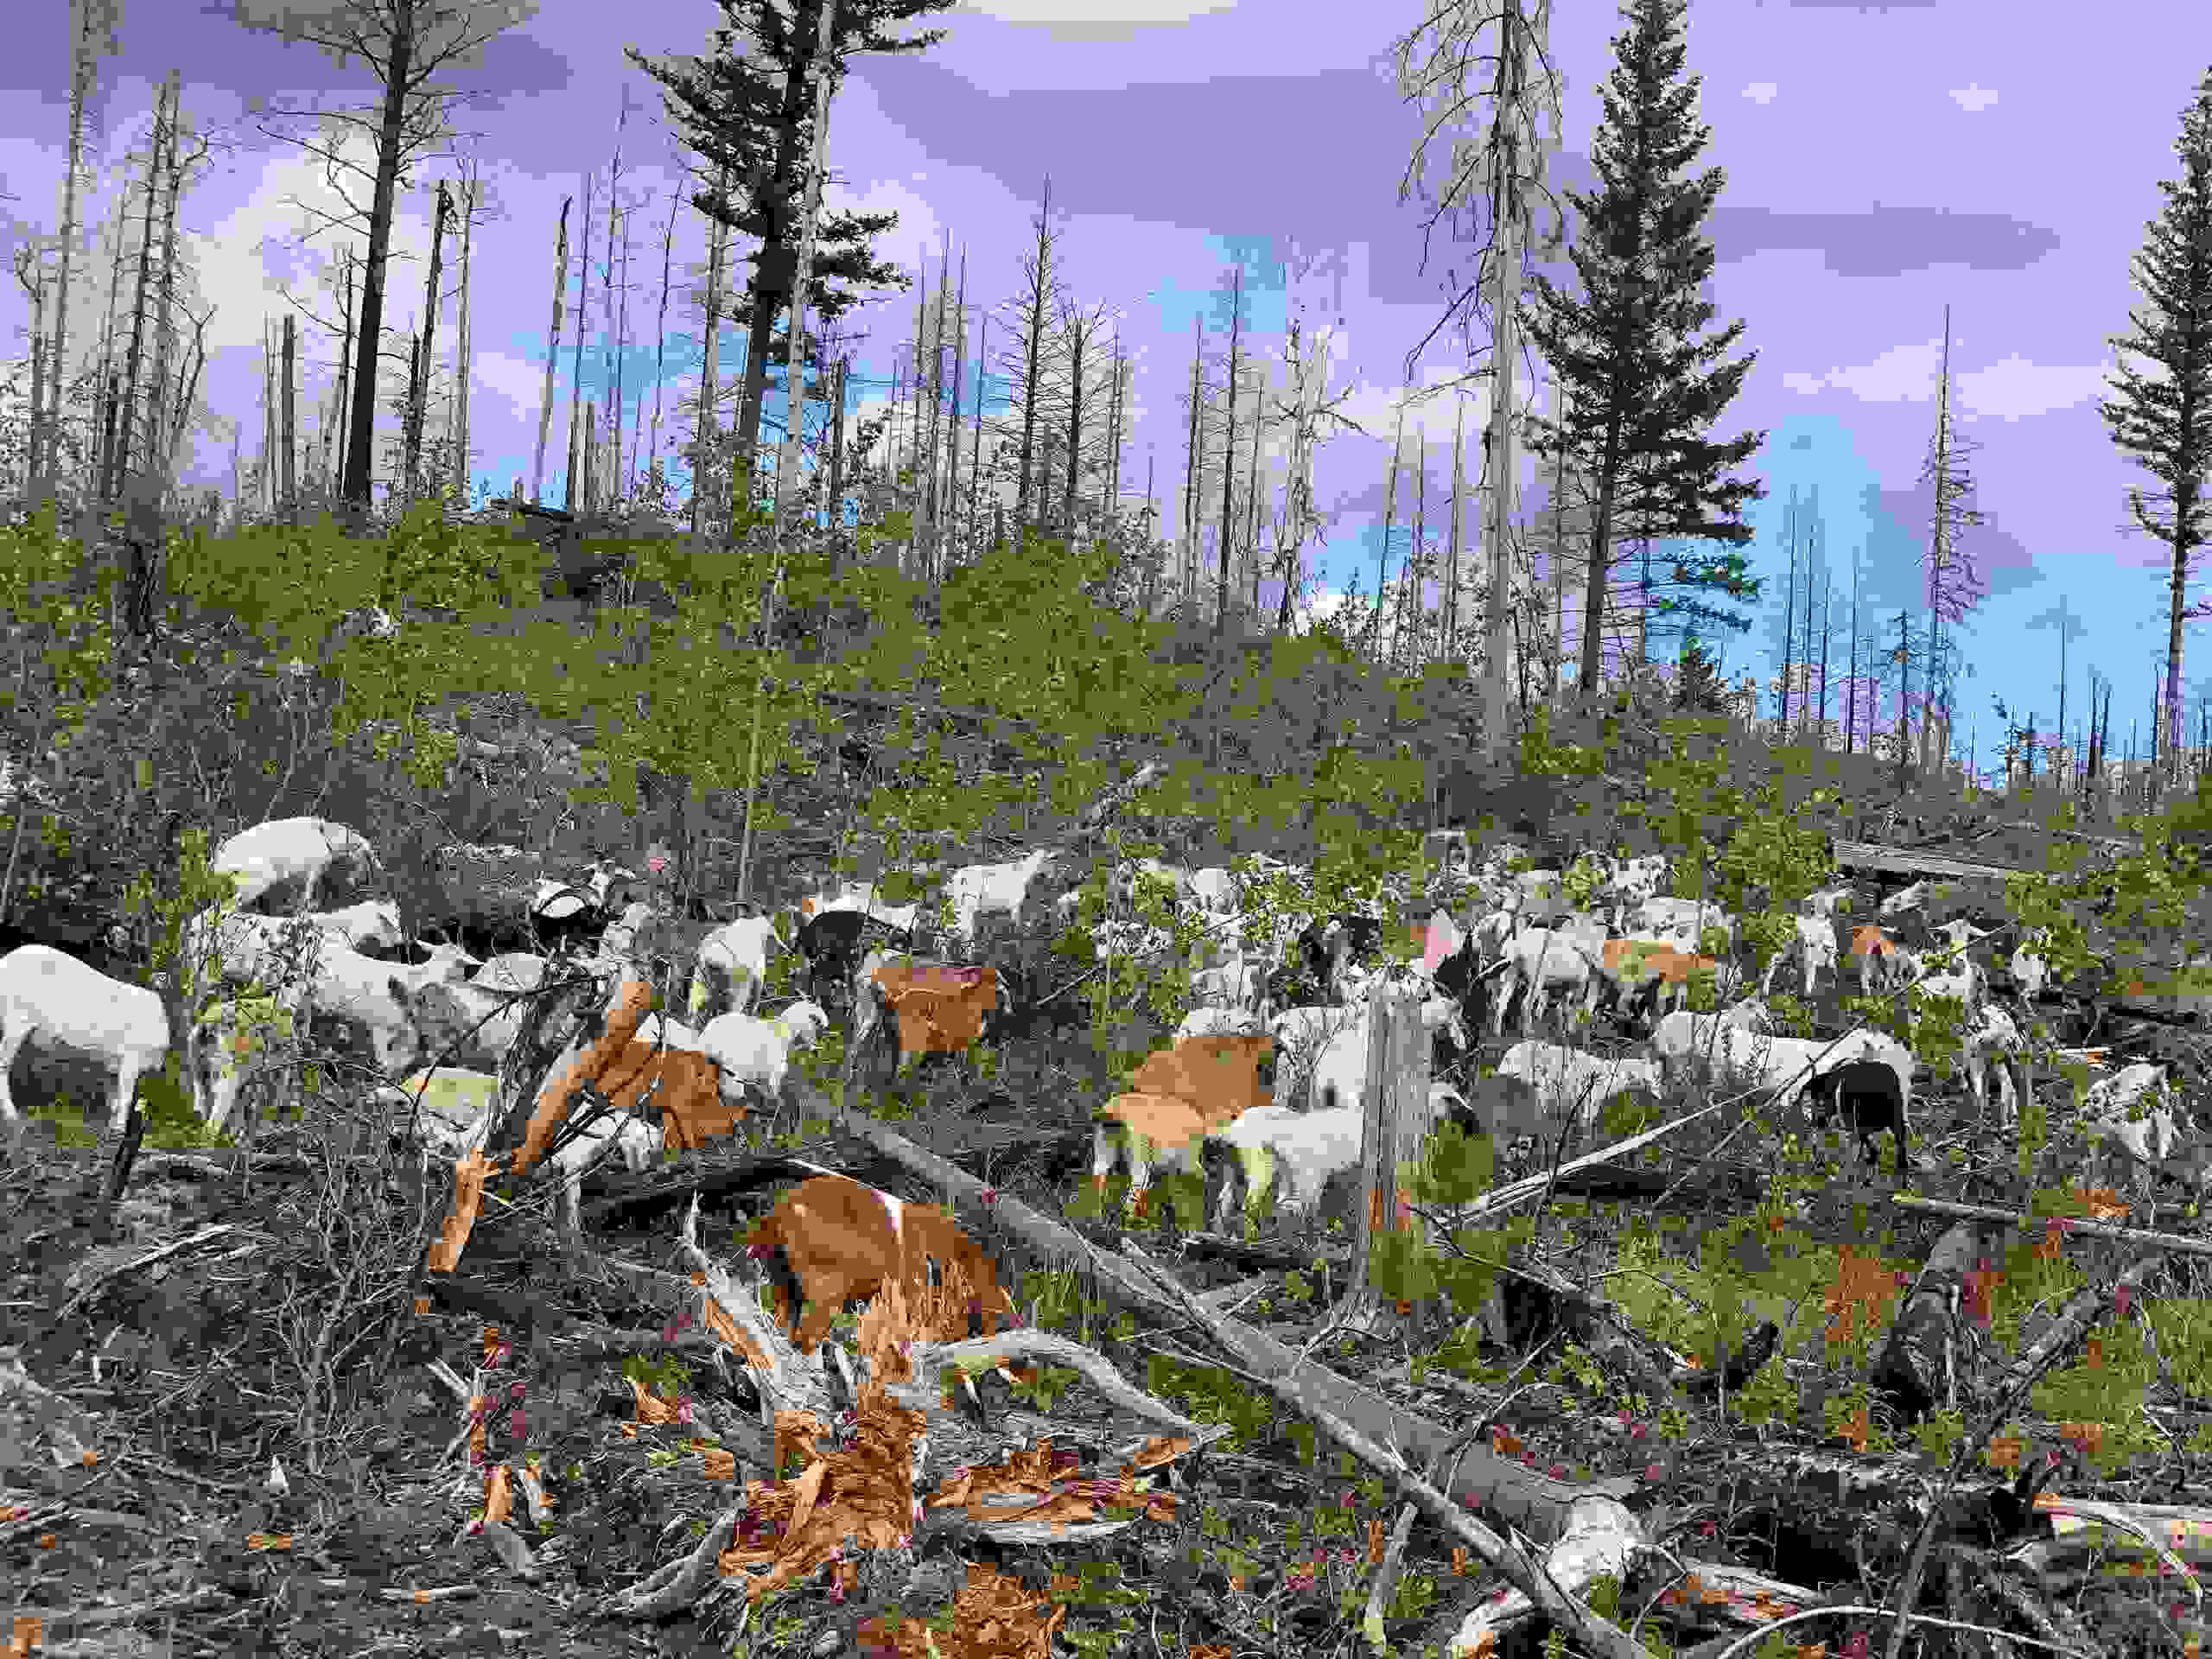 Goats Brushing in forestry.